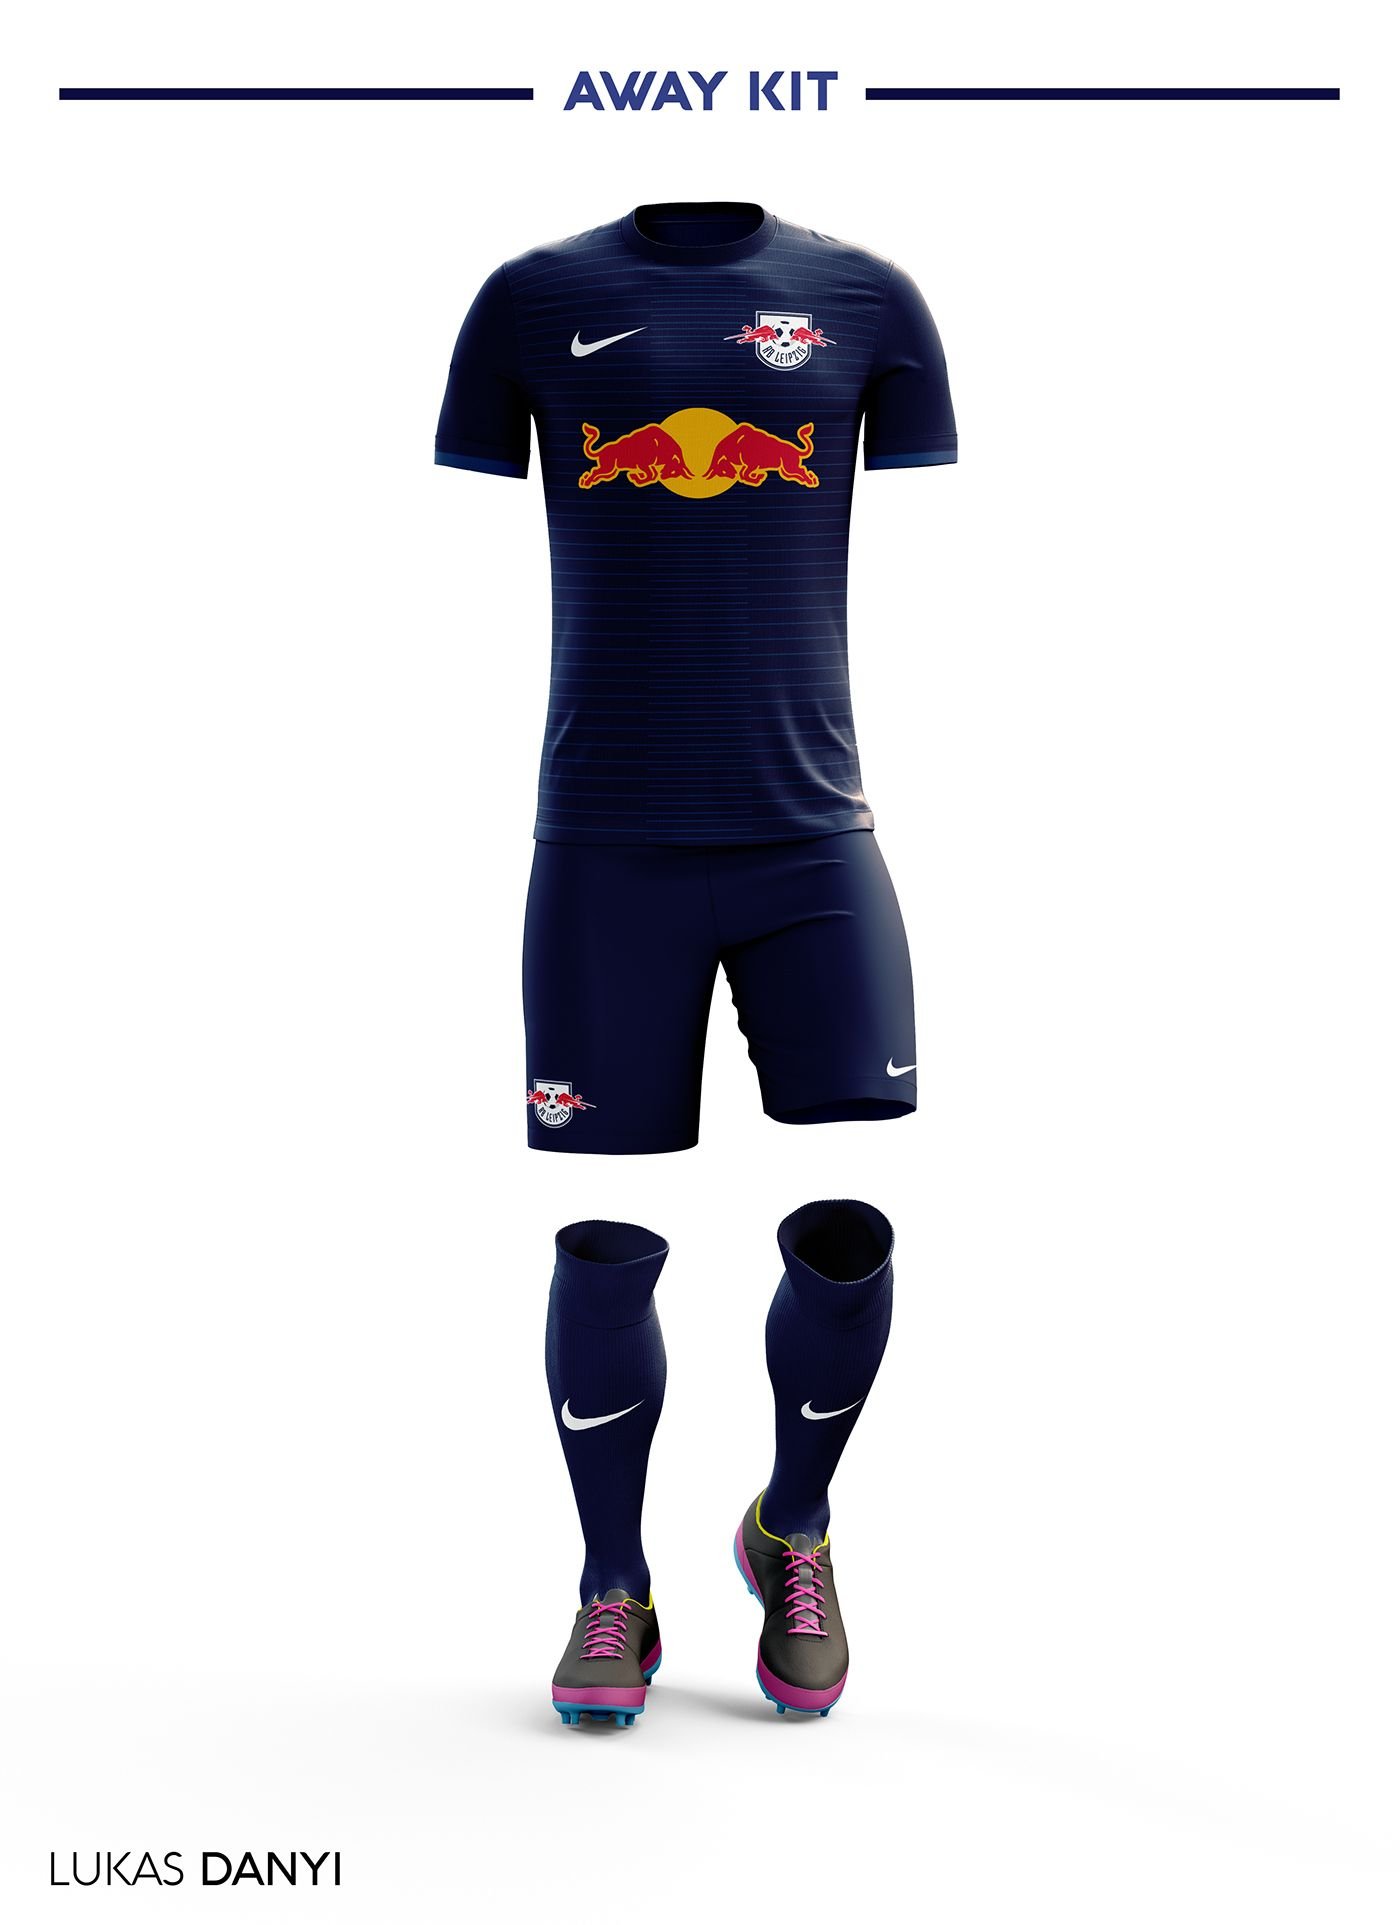 9a44328d82f I designed football kits for RB Leipzig for the upcoming season 17 ...